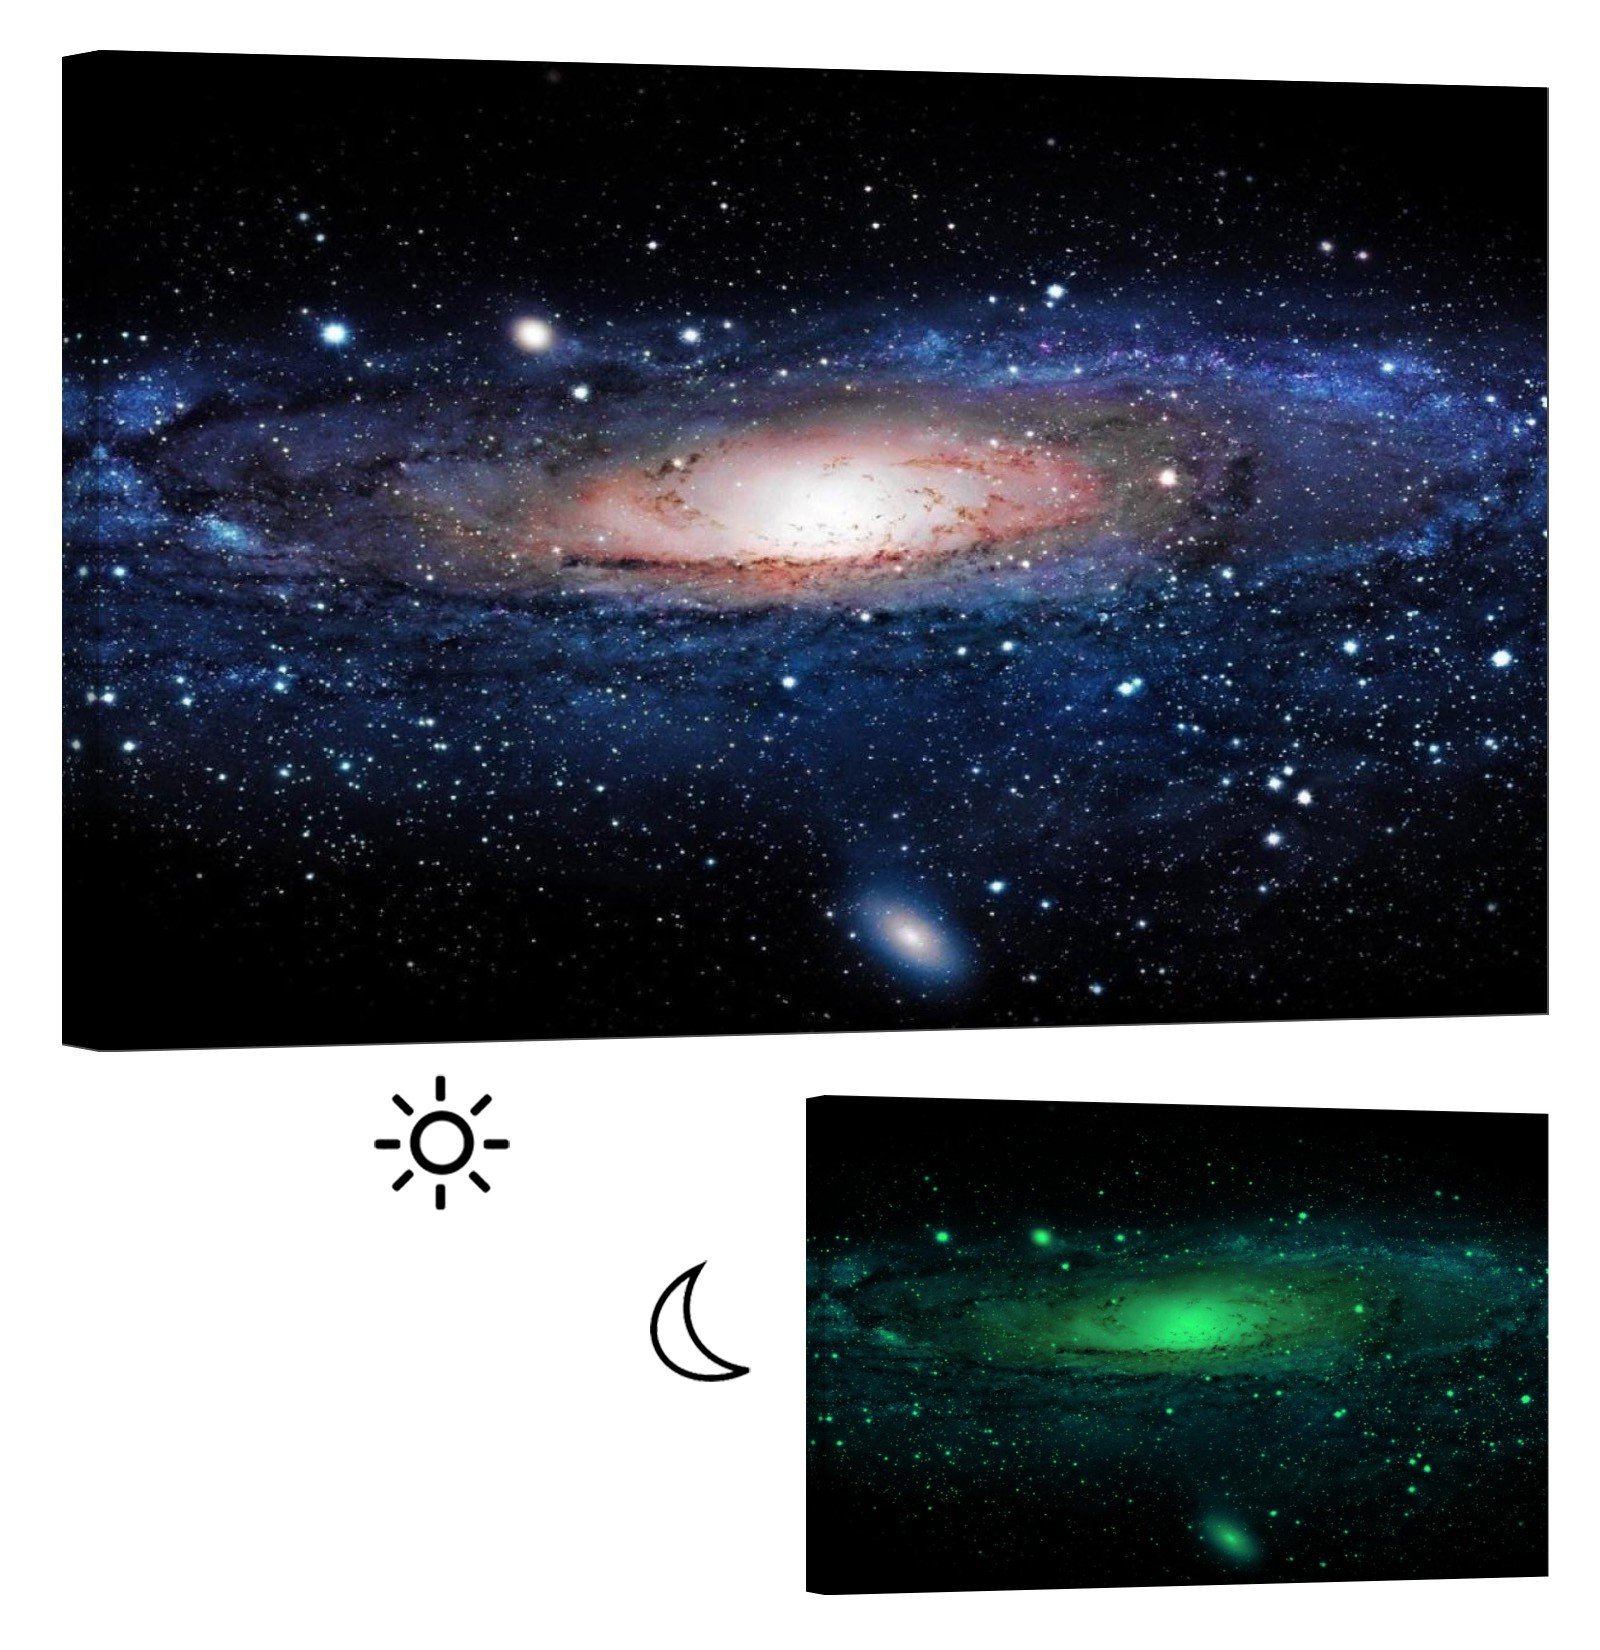 LightFairy Glow in the Dark Canvas Painting - Stretched and Framed Giclee Wall Art Print - Space Outerspace Milky Way Galaxy - Master Bedroom Living Room Decor - 6 Hours Glow - 46 x 32 inch